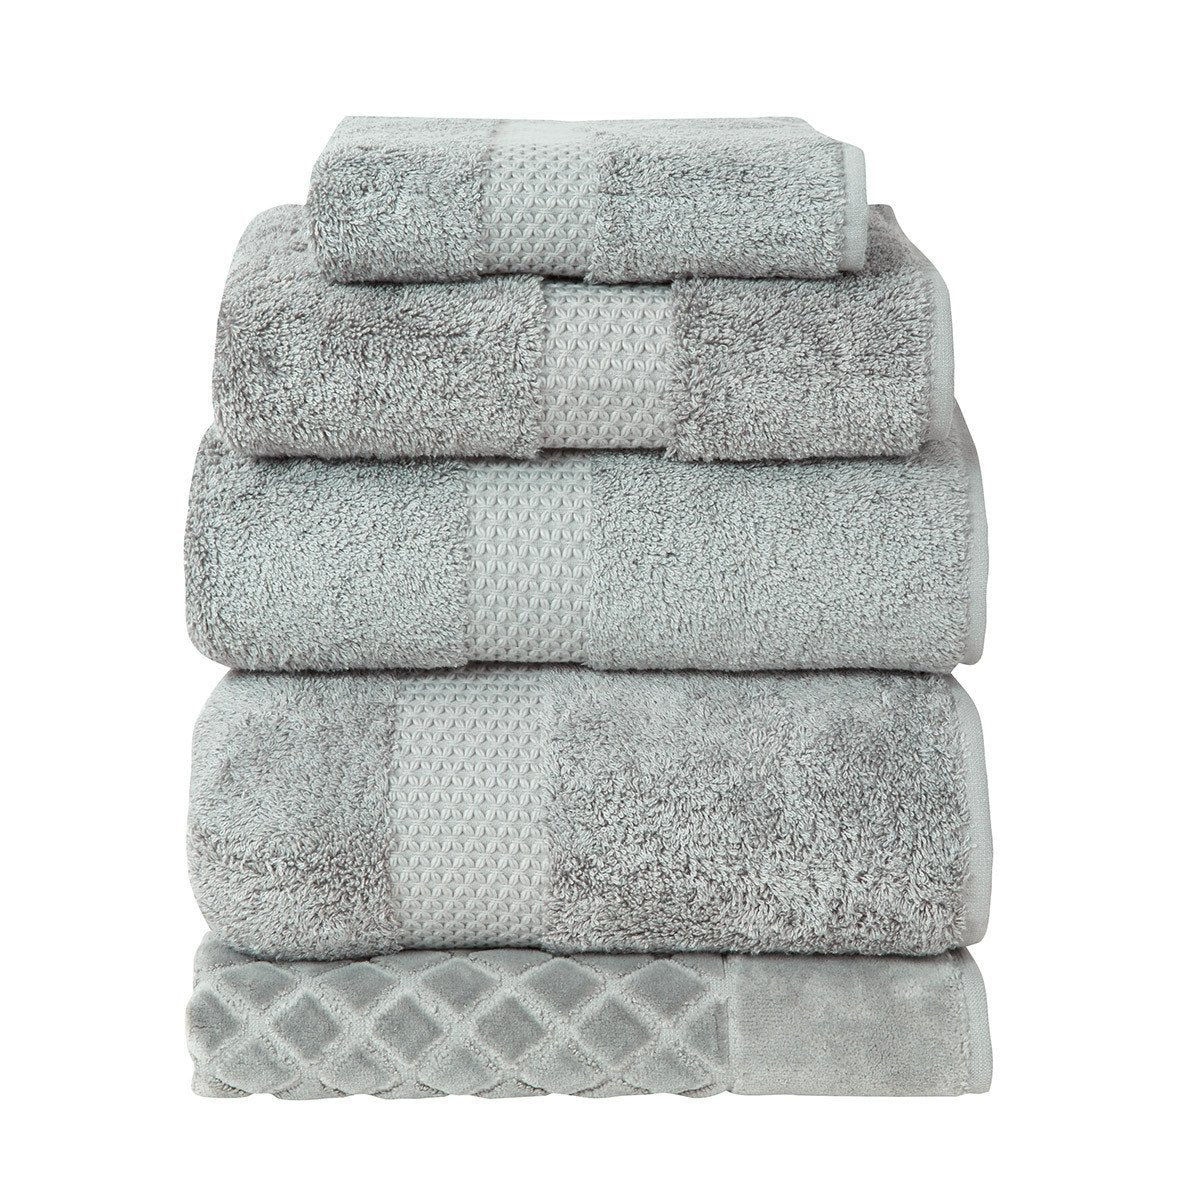 Etoile Platine Bath Collection by Yves Delorme | Fig Linens - Gray bath linen